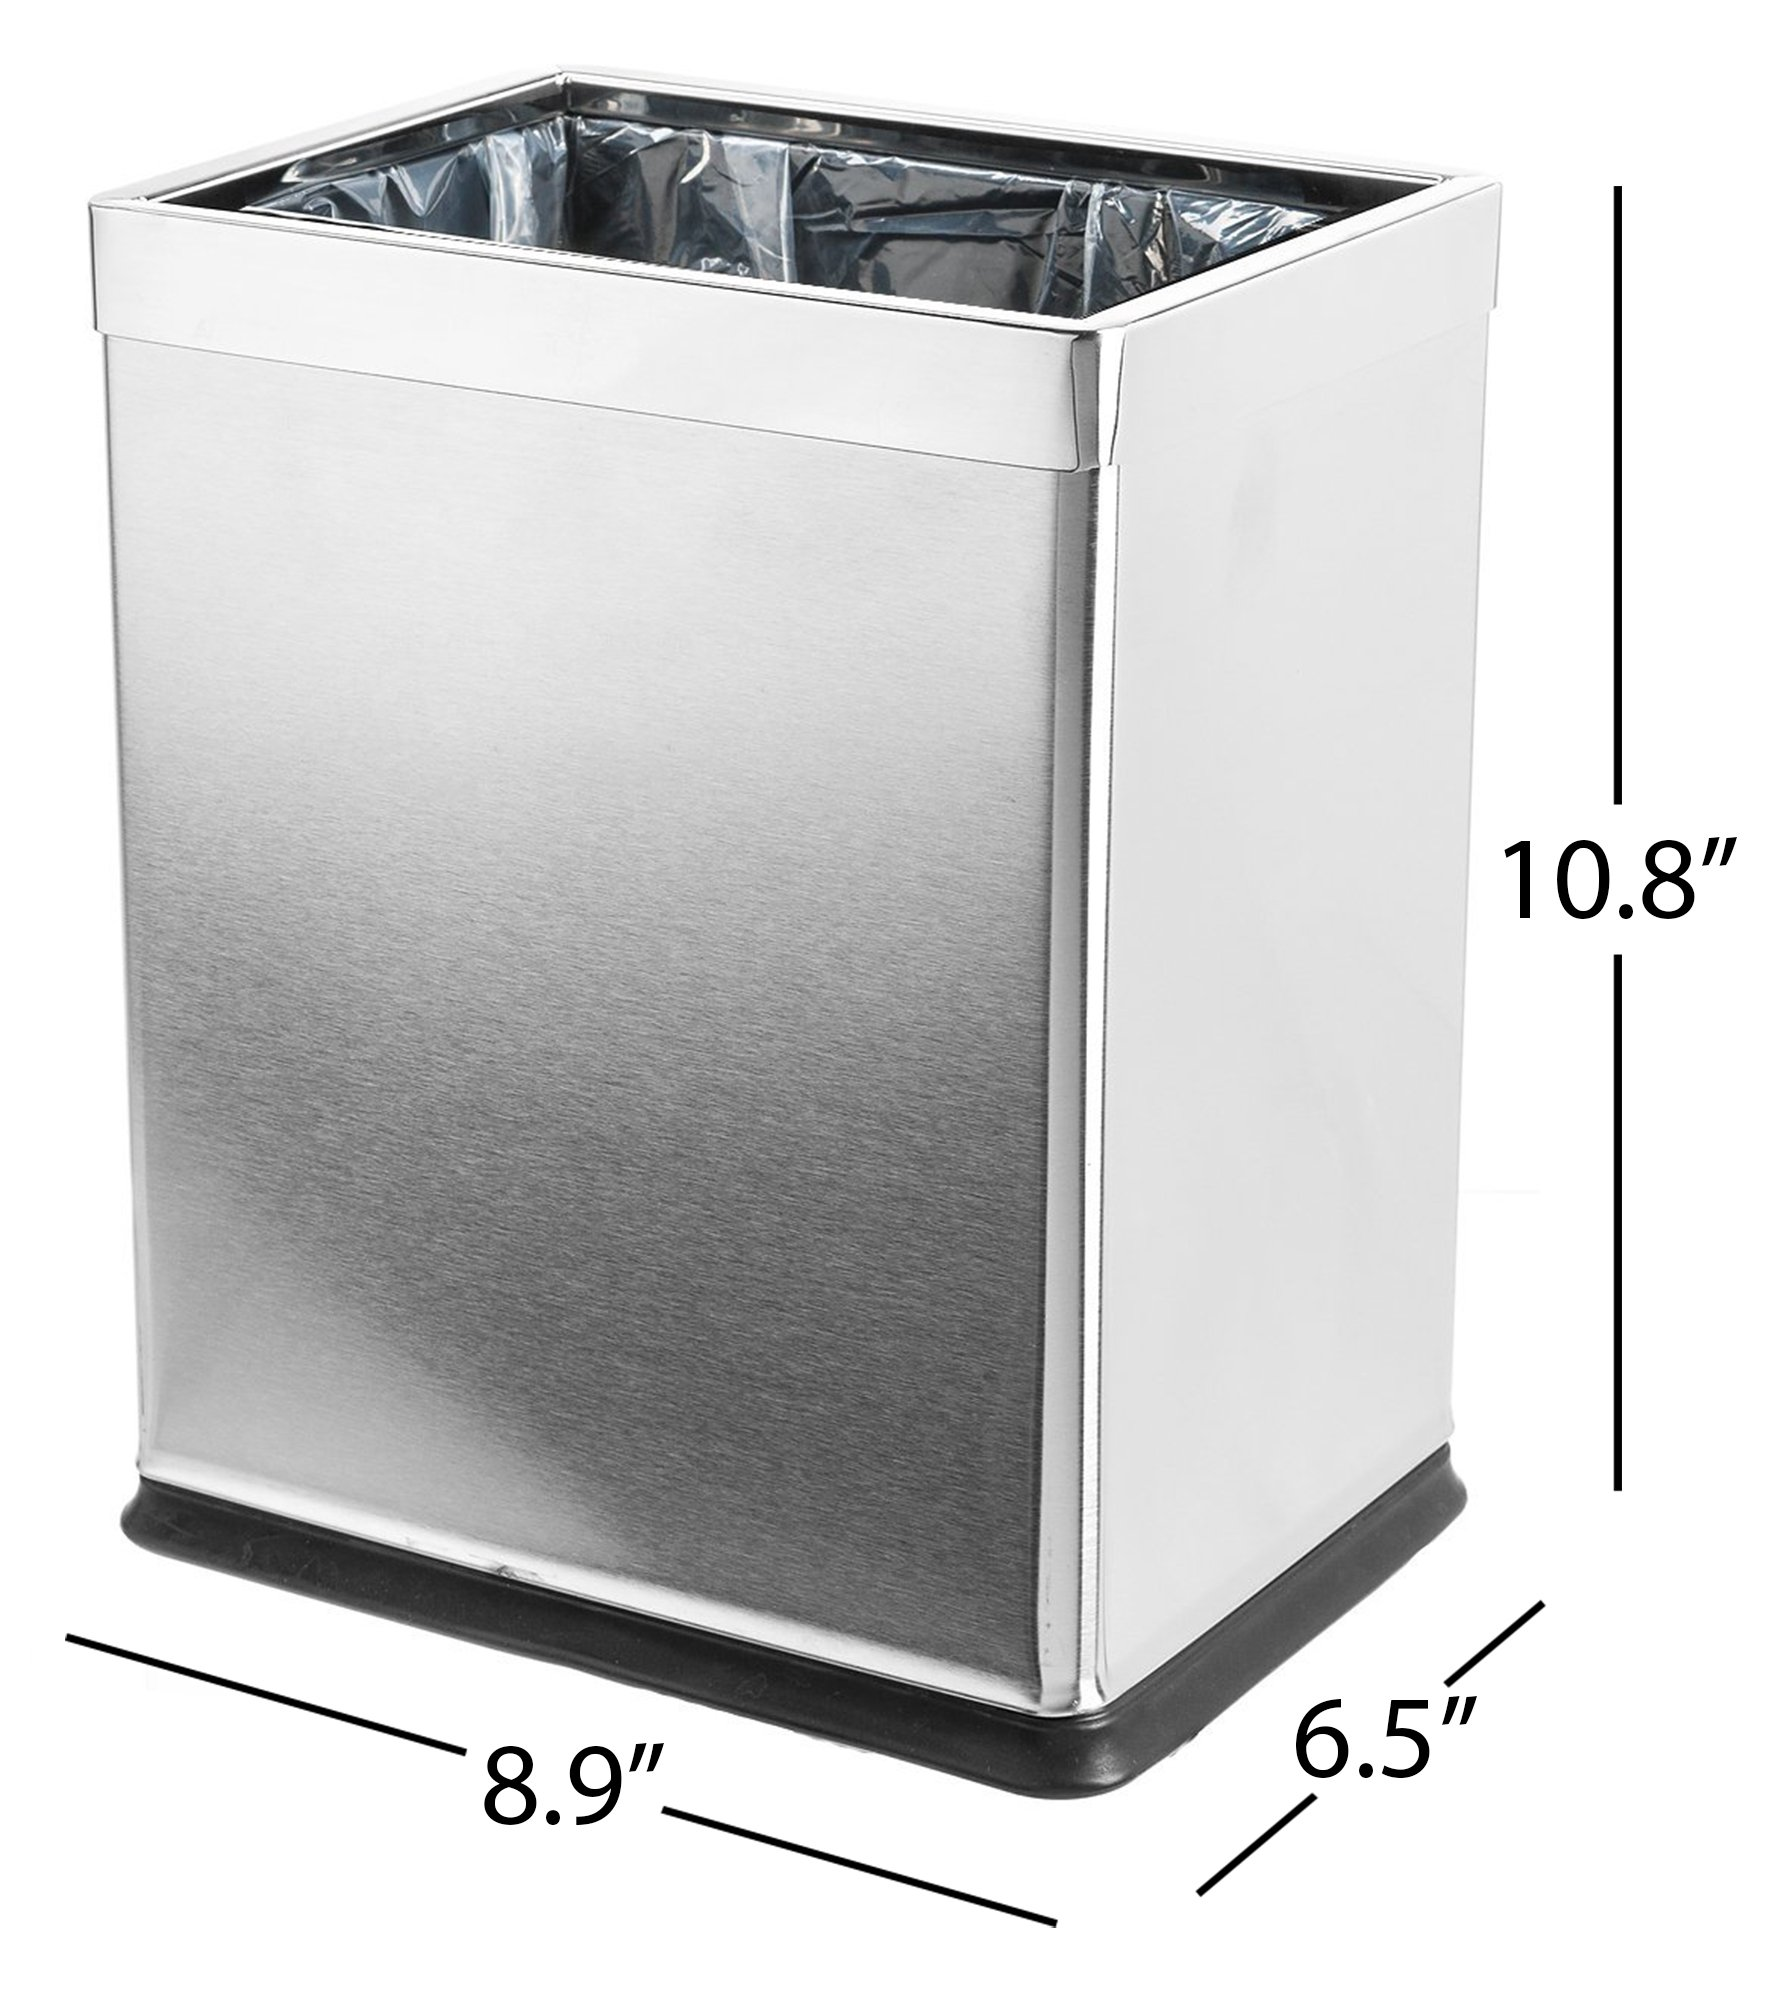 Dualplex Brelso 'Invisi-Overlap' Open Top Trash Can, Small Office Wastebasket, Modern Home Décor, Rectangle Shape Stainless Steel by Dualplex